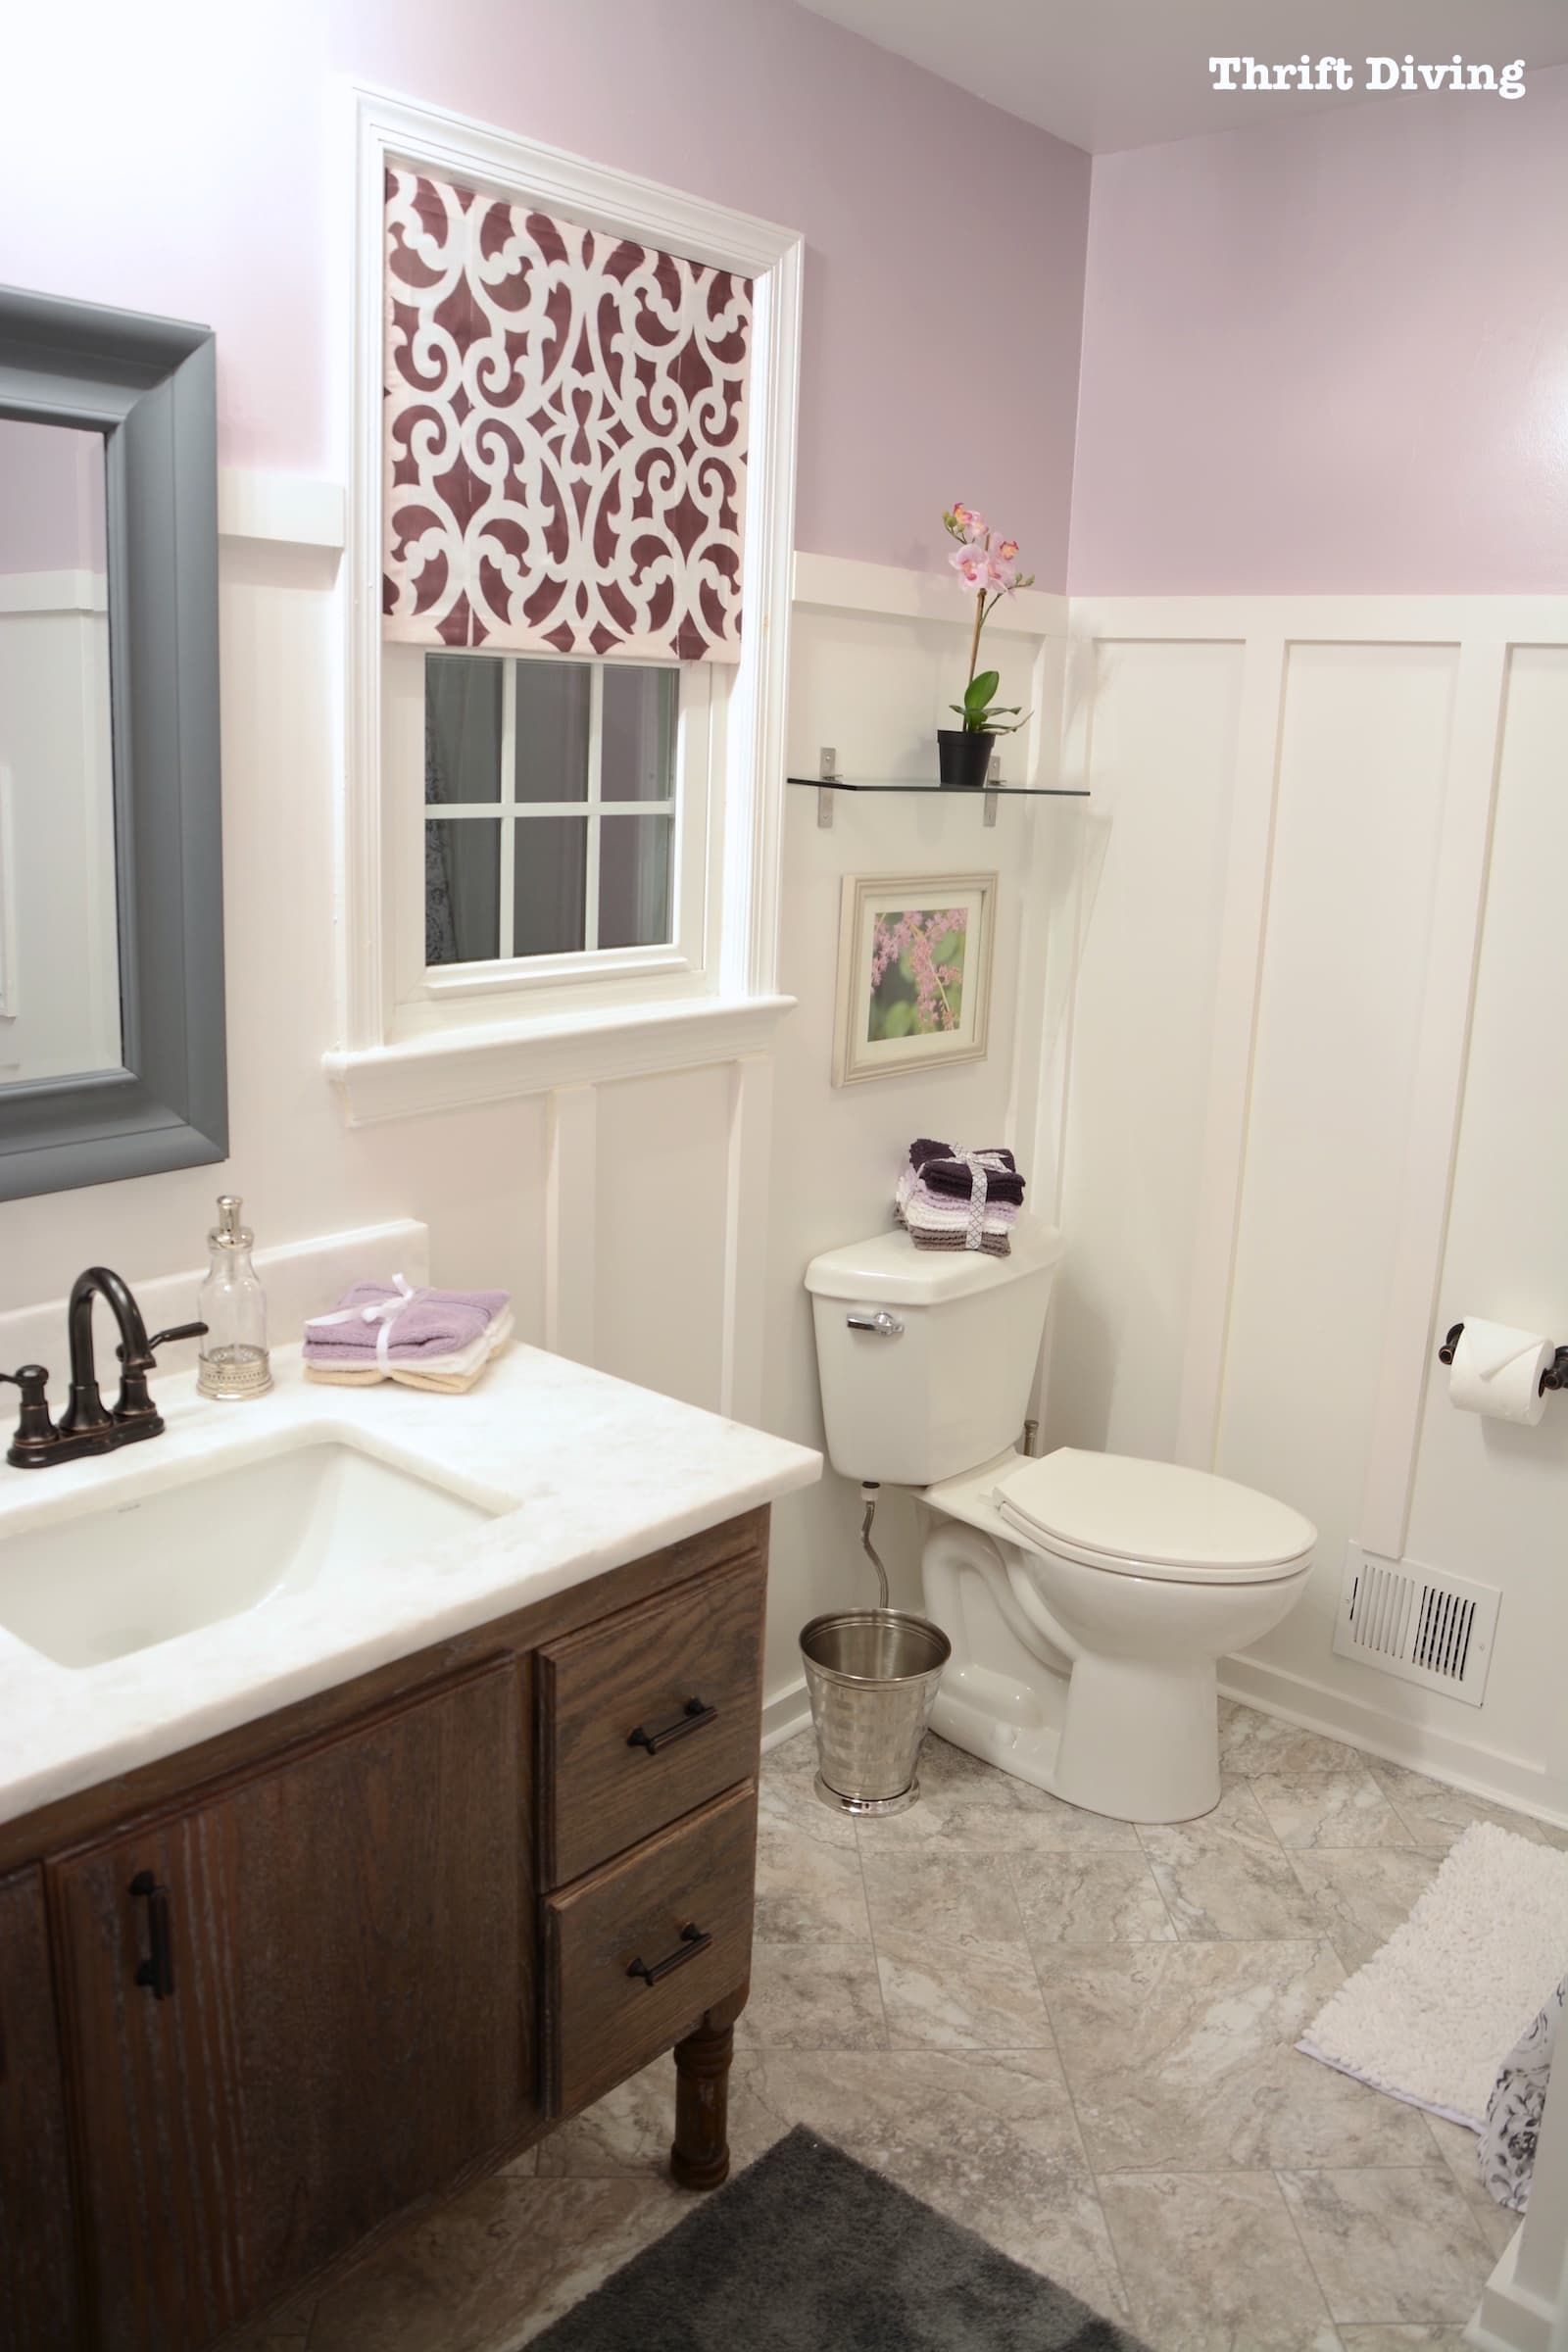 My Pretty Lavender Bathroom Makeover: BEFORE & AFTER | "|1600|2400|?|en|2|dbffb0472da28a0190fbc2b644508a40|False|UNLIKELY|0.3366651237010956